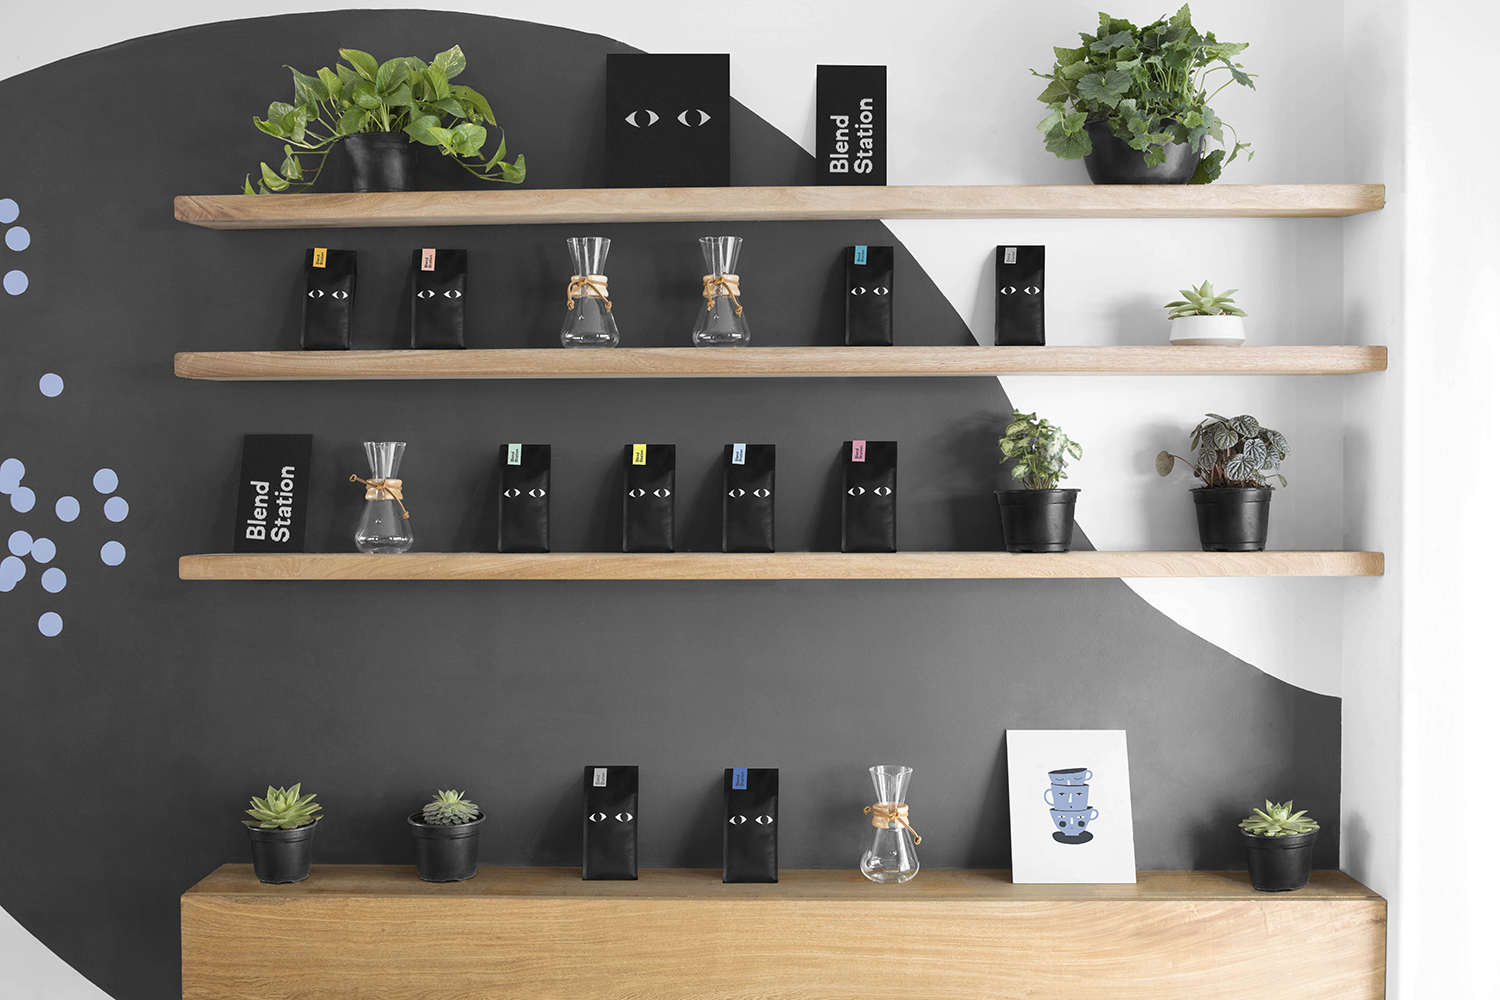 Blend Station product display